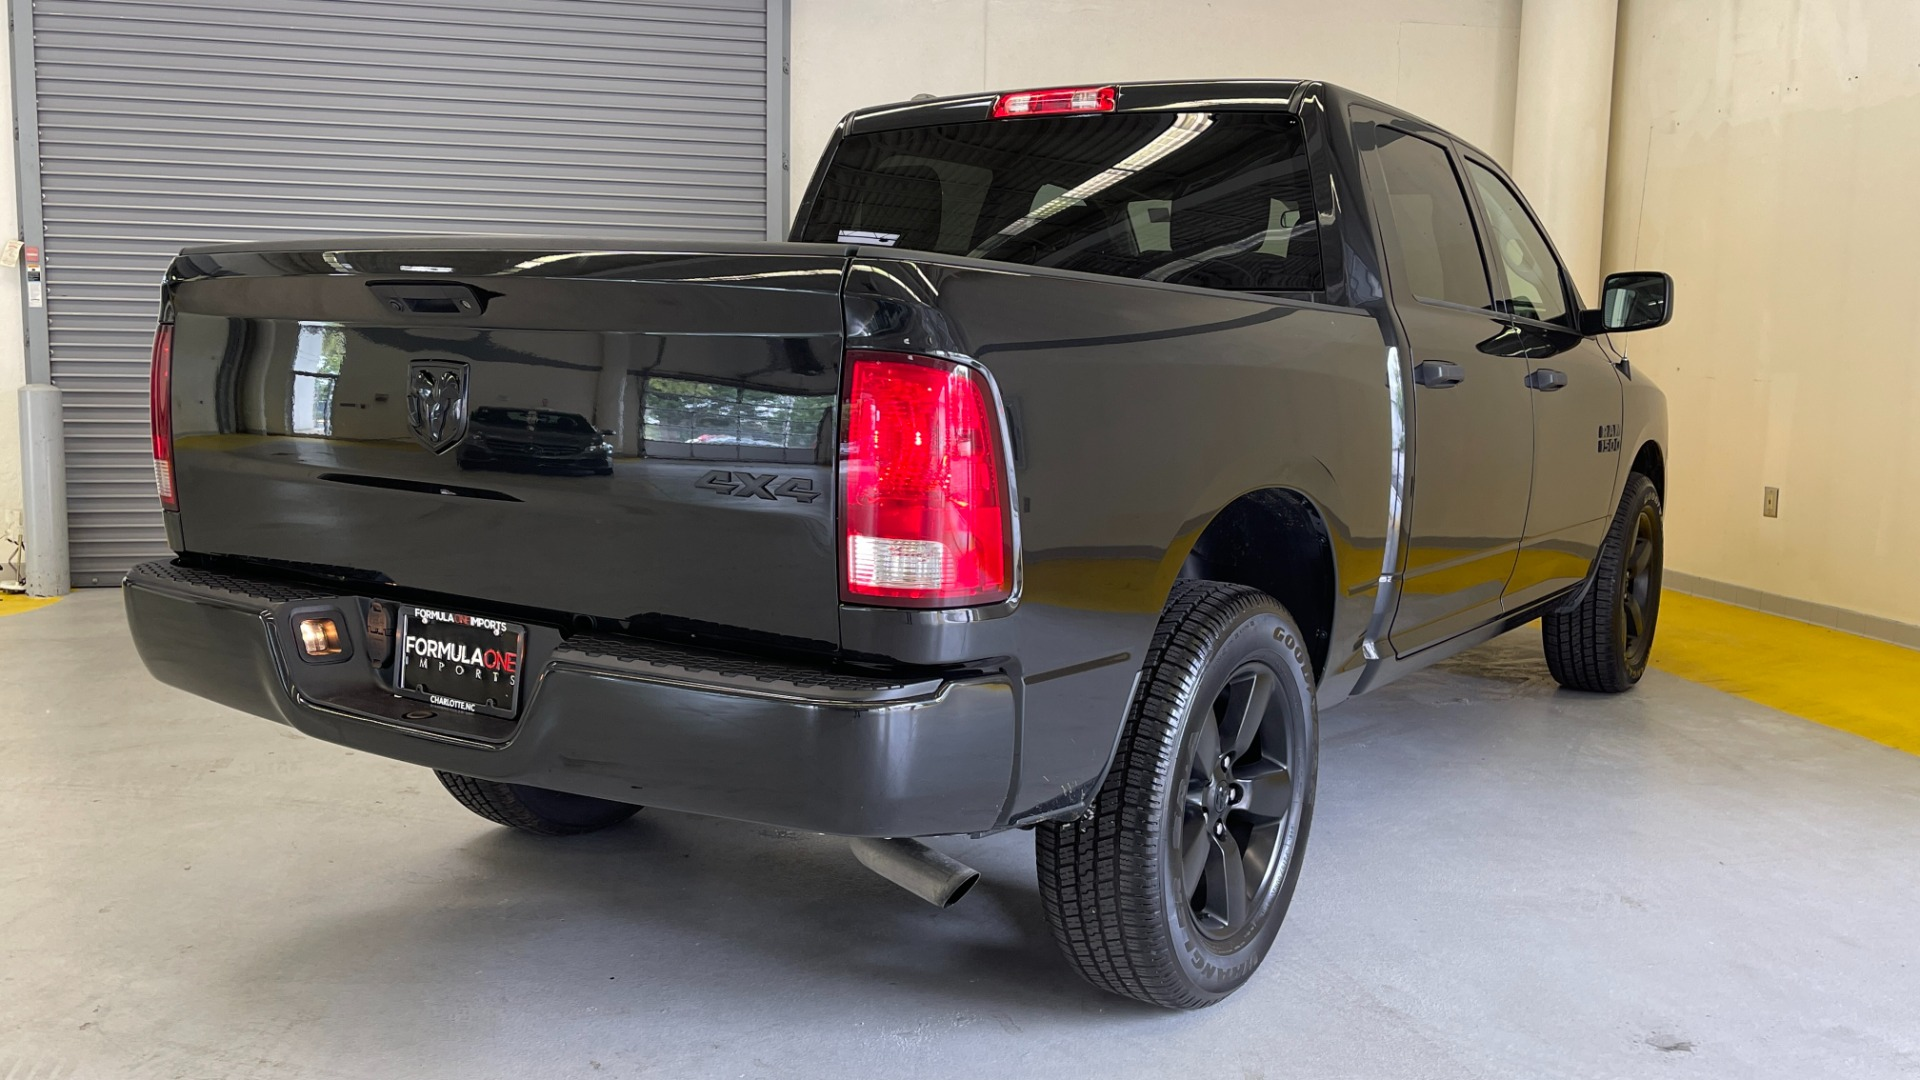 Used 2018 Ram 1500 EXPRESS CREWCAB 4X4 / 3.6L V6 / 8-SPD AUTO / REARVIEW for sale $36,495 at Formula Imports in Charlotte NC 28227 2